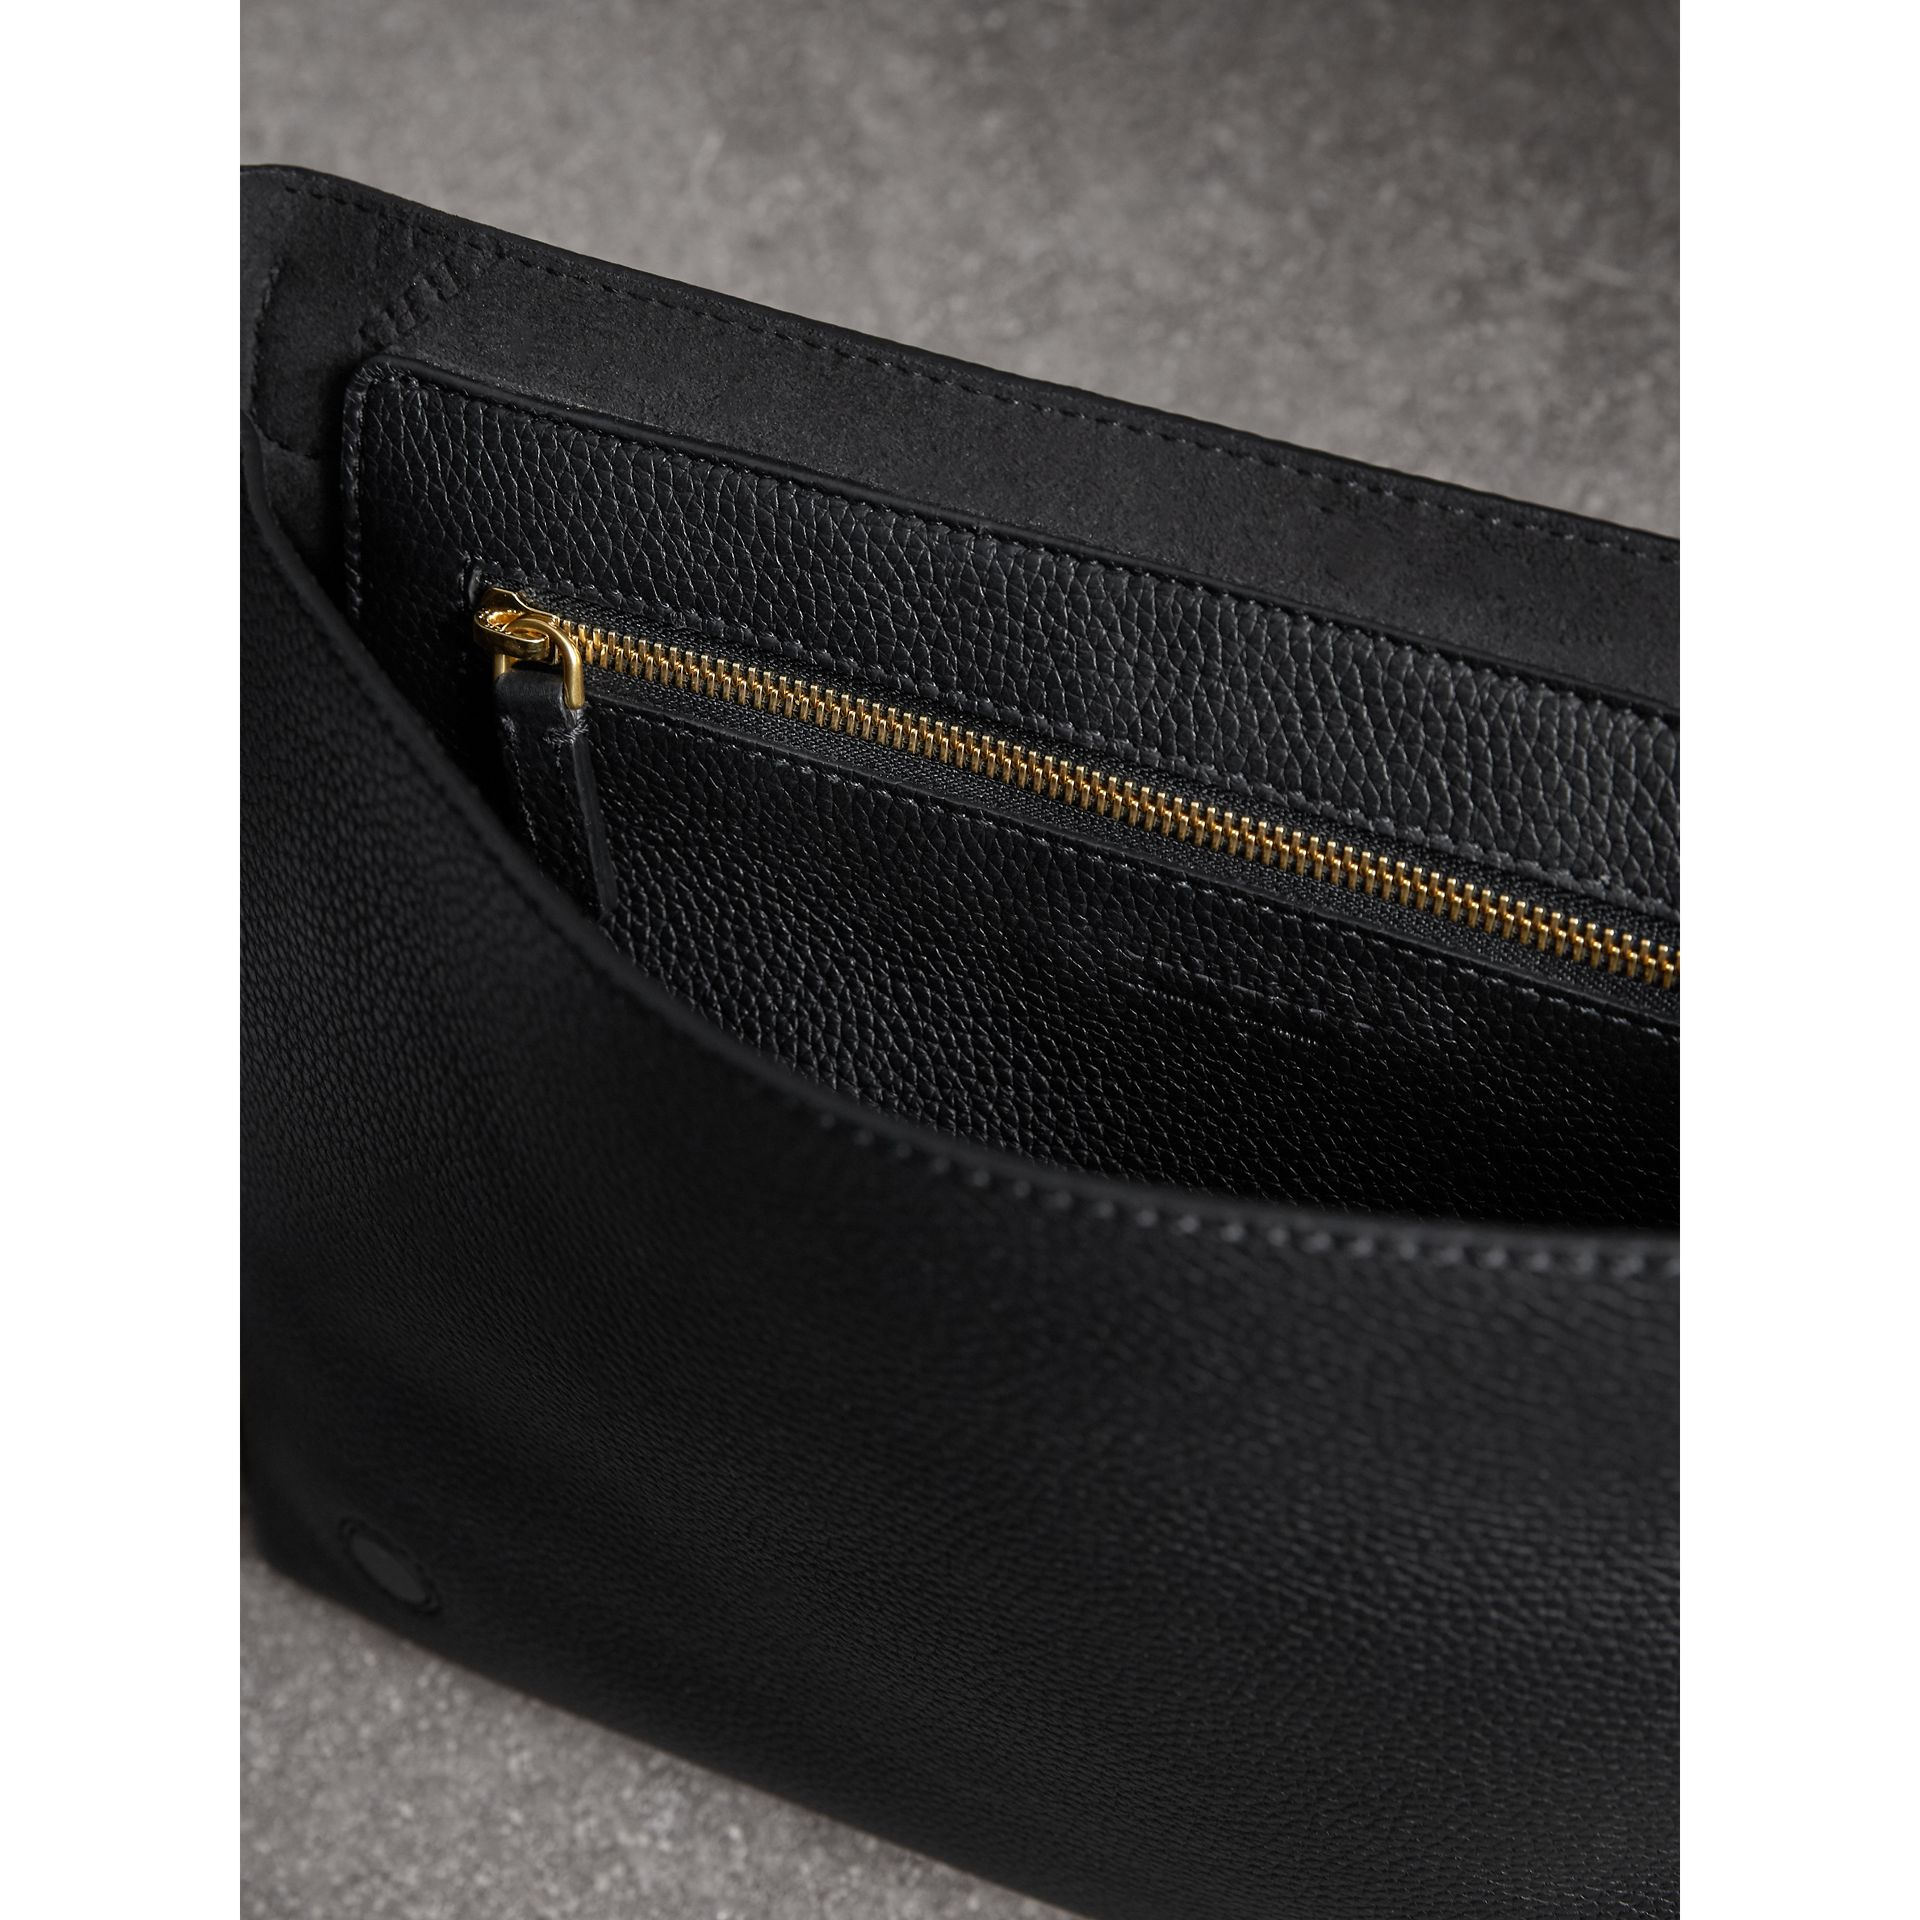 Medium Embossed Leather Messenger Bag in Black - Women | Burberry - gallery image 4